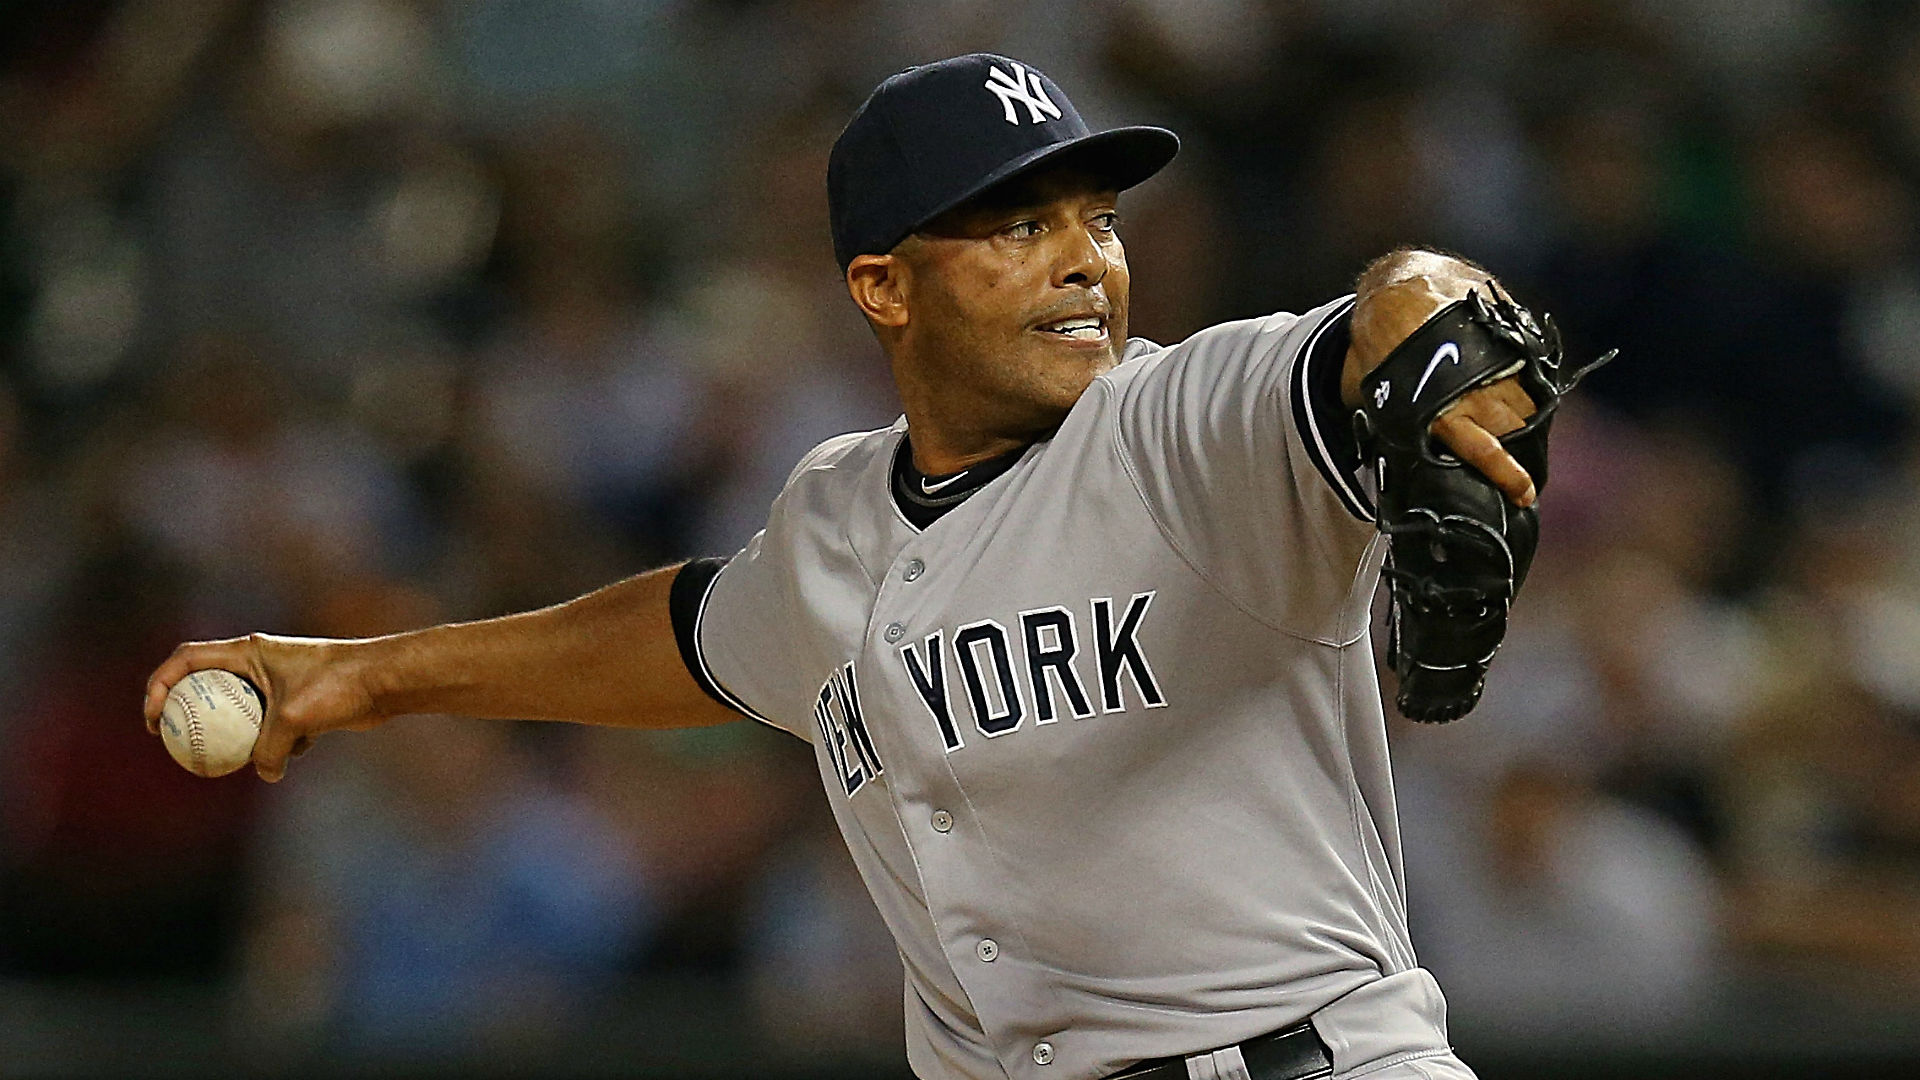 The one word that defines Mariano Rivera's Hall of Fame career